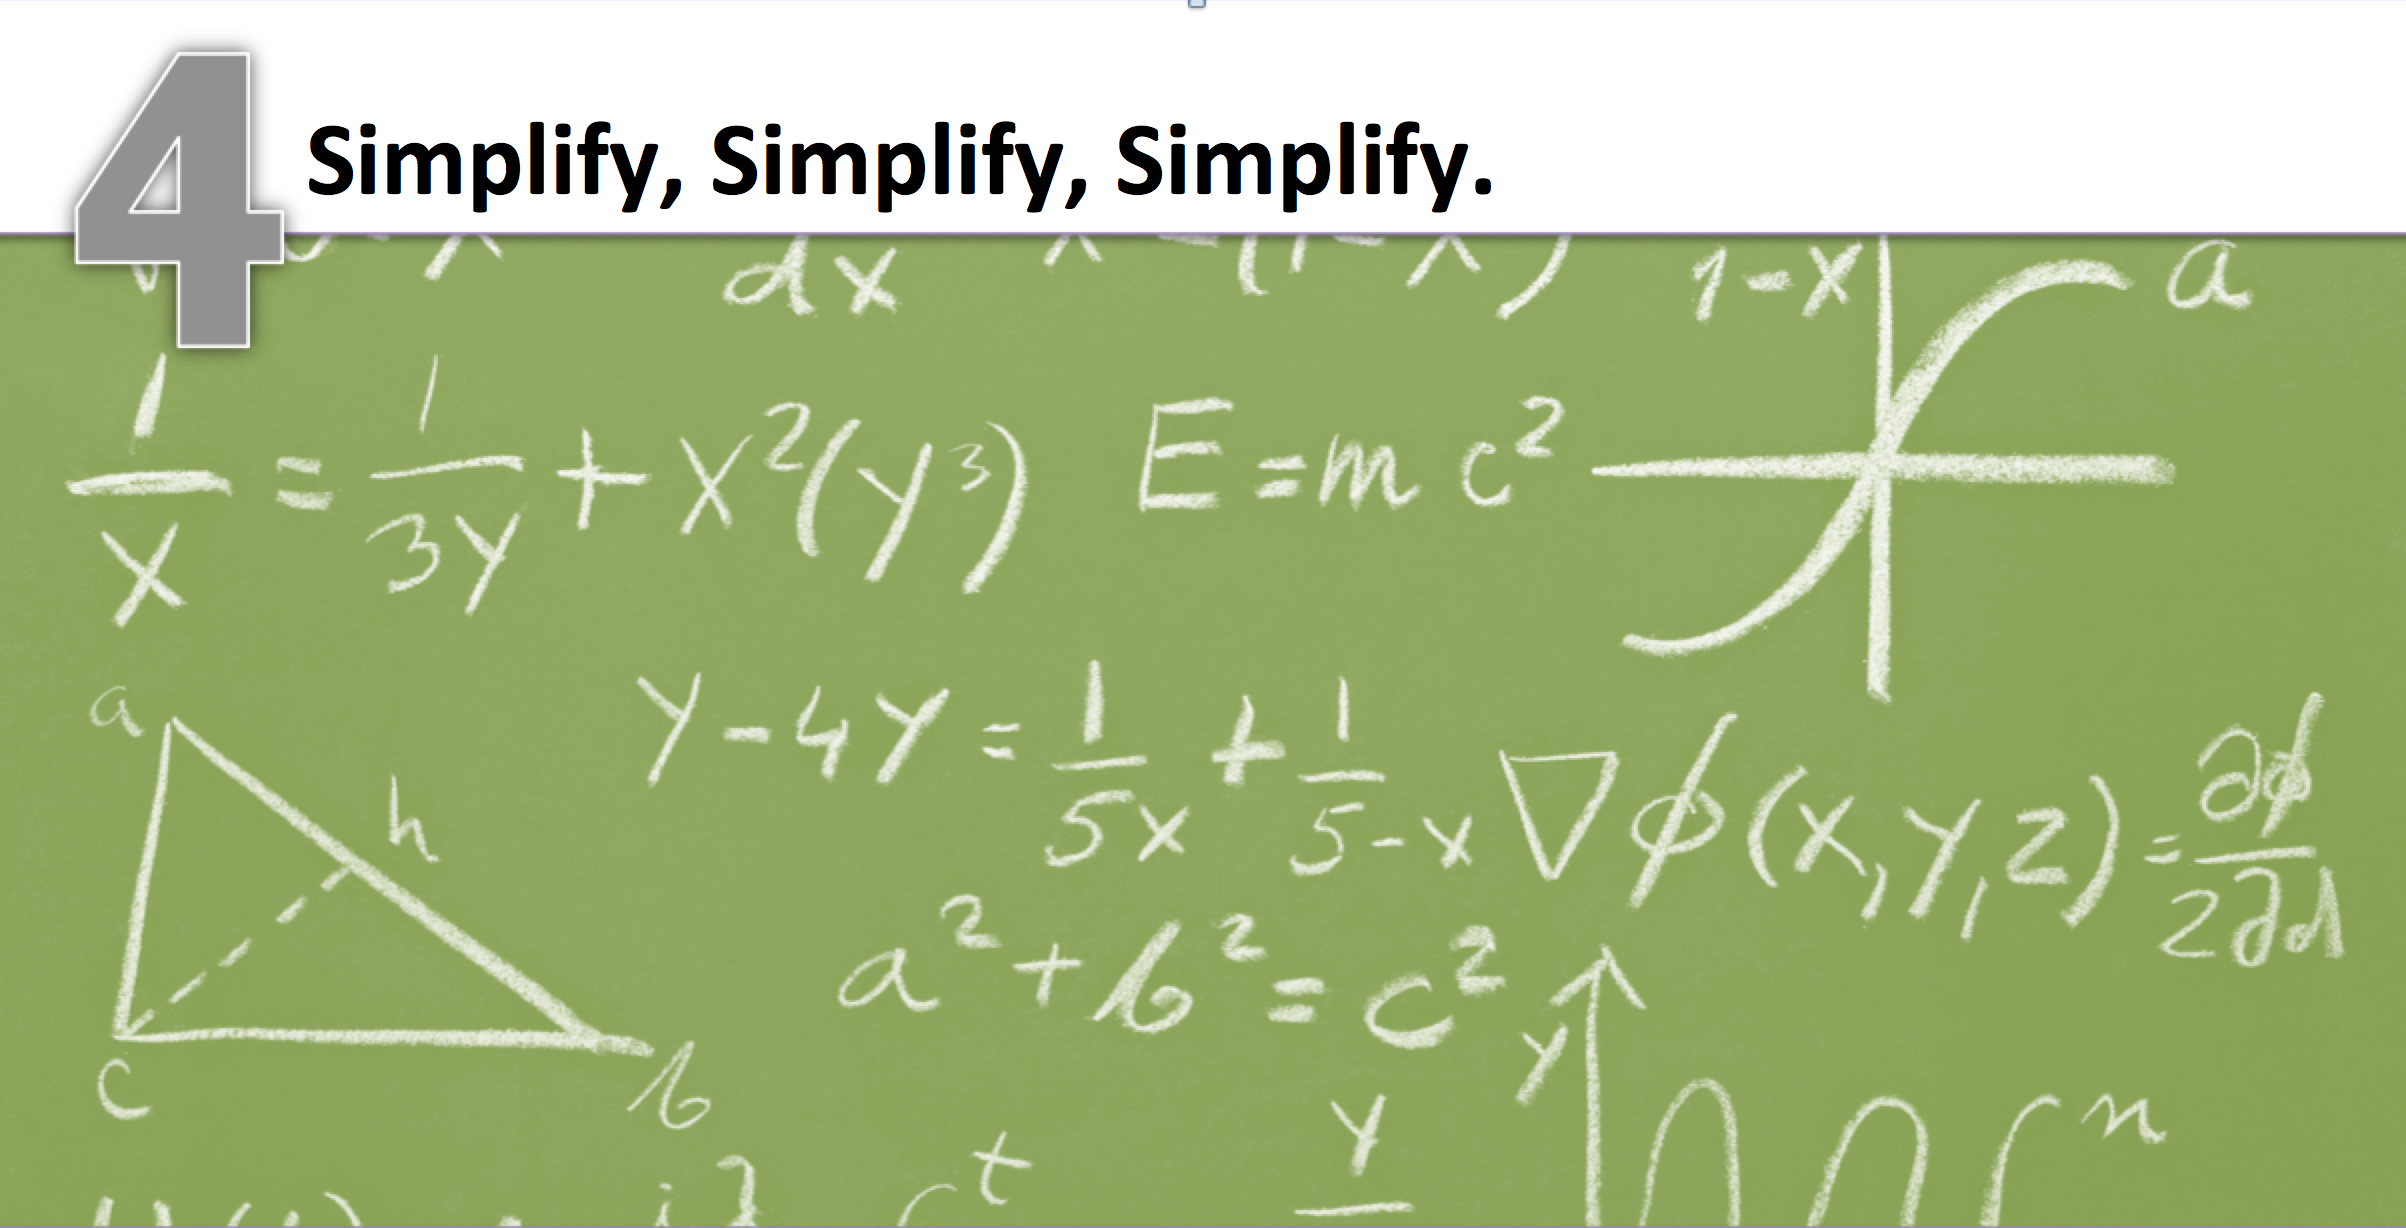 Simplify complicated slides in the presentation